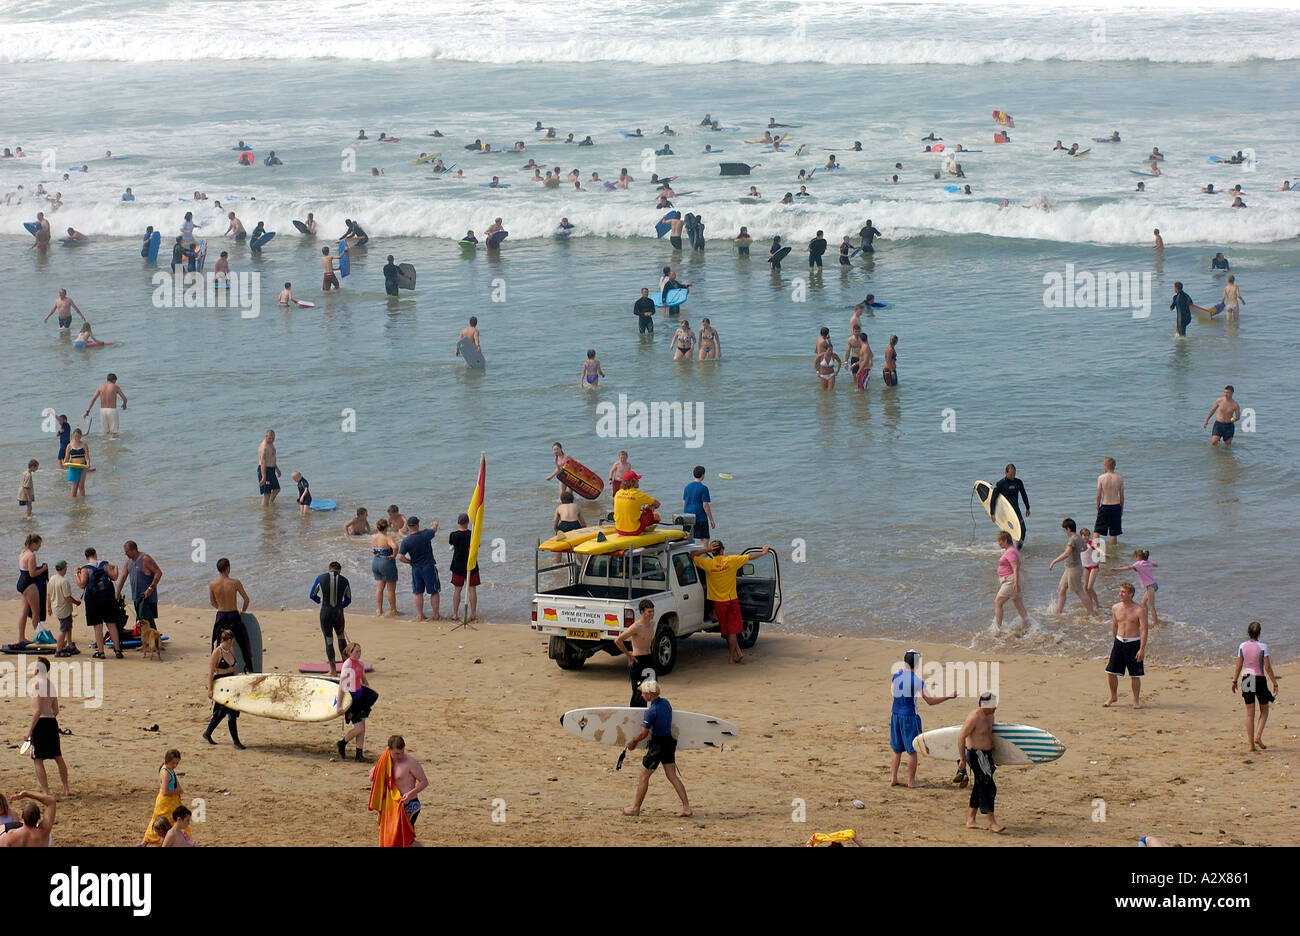 Activity At Fistral Beach Newquay In Cornwall England Uk On A Busy August Summer Day